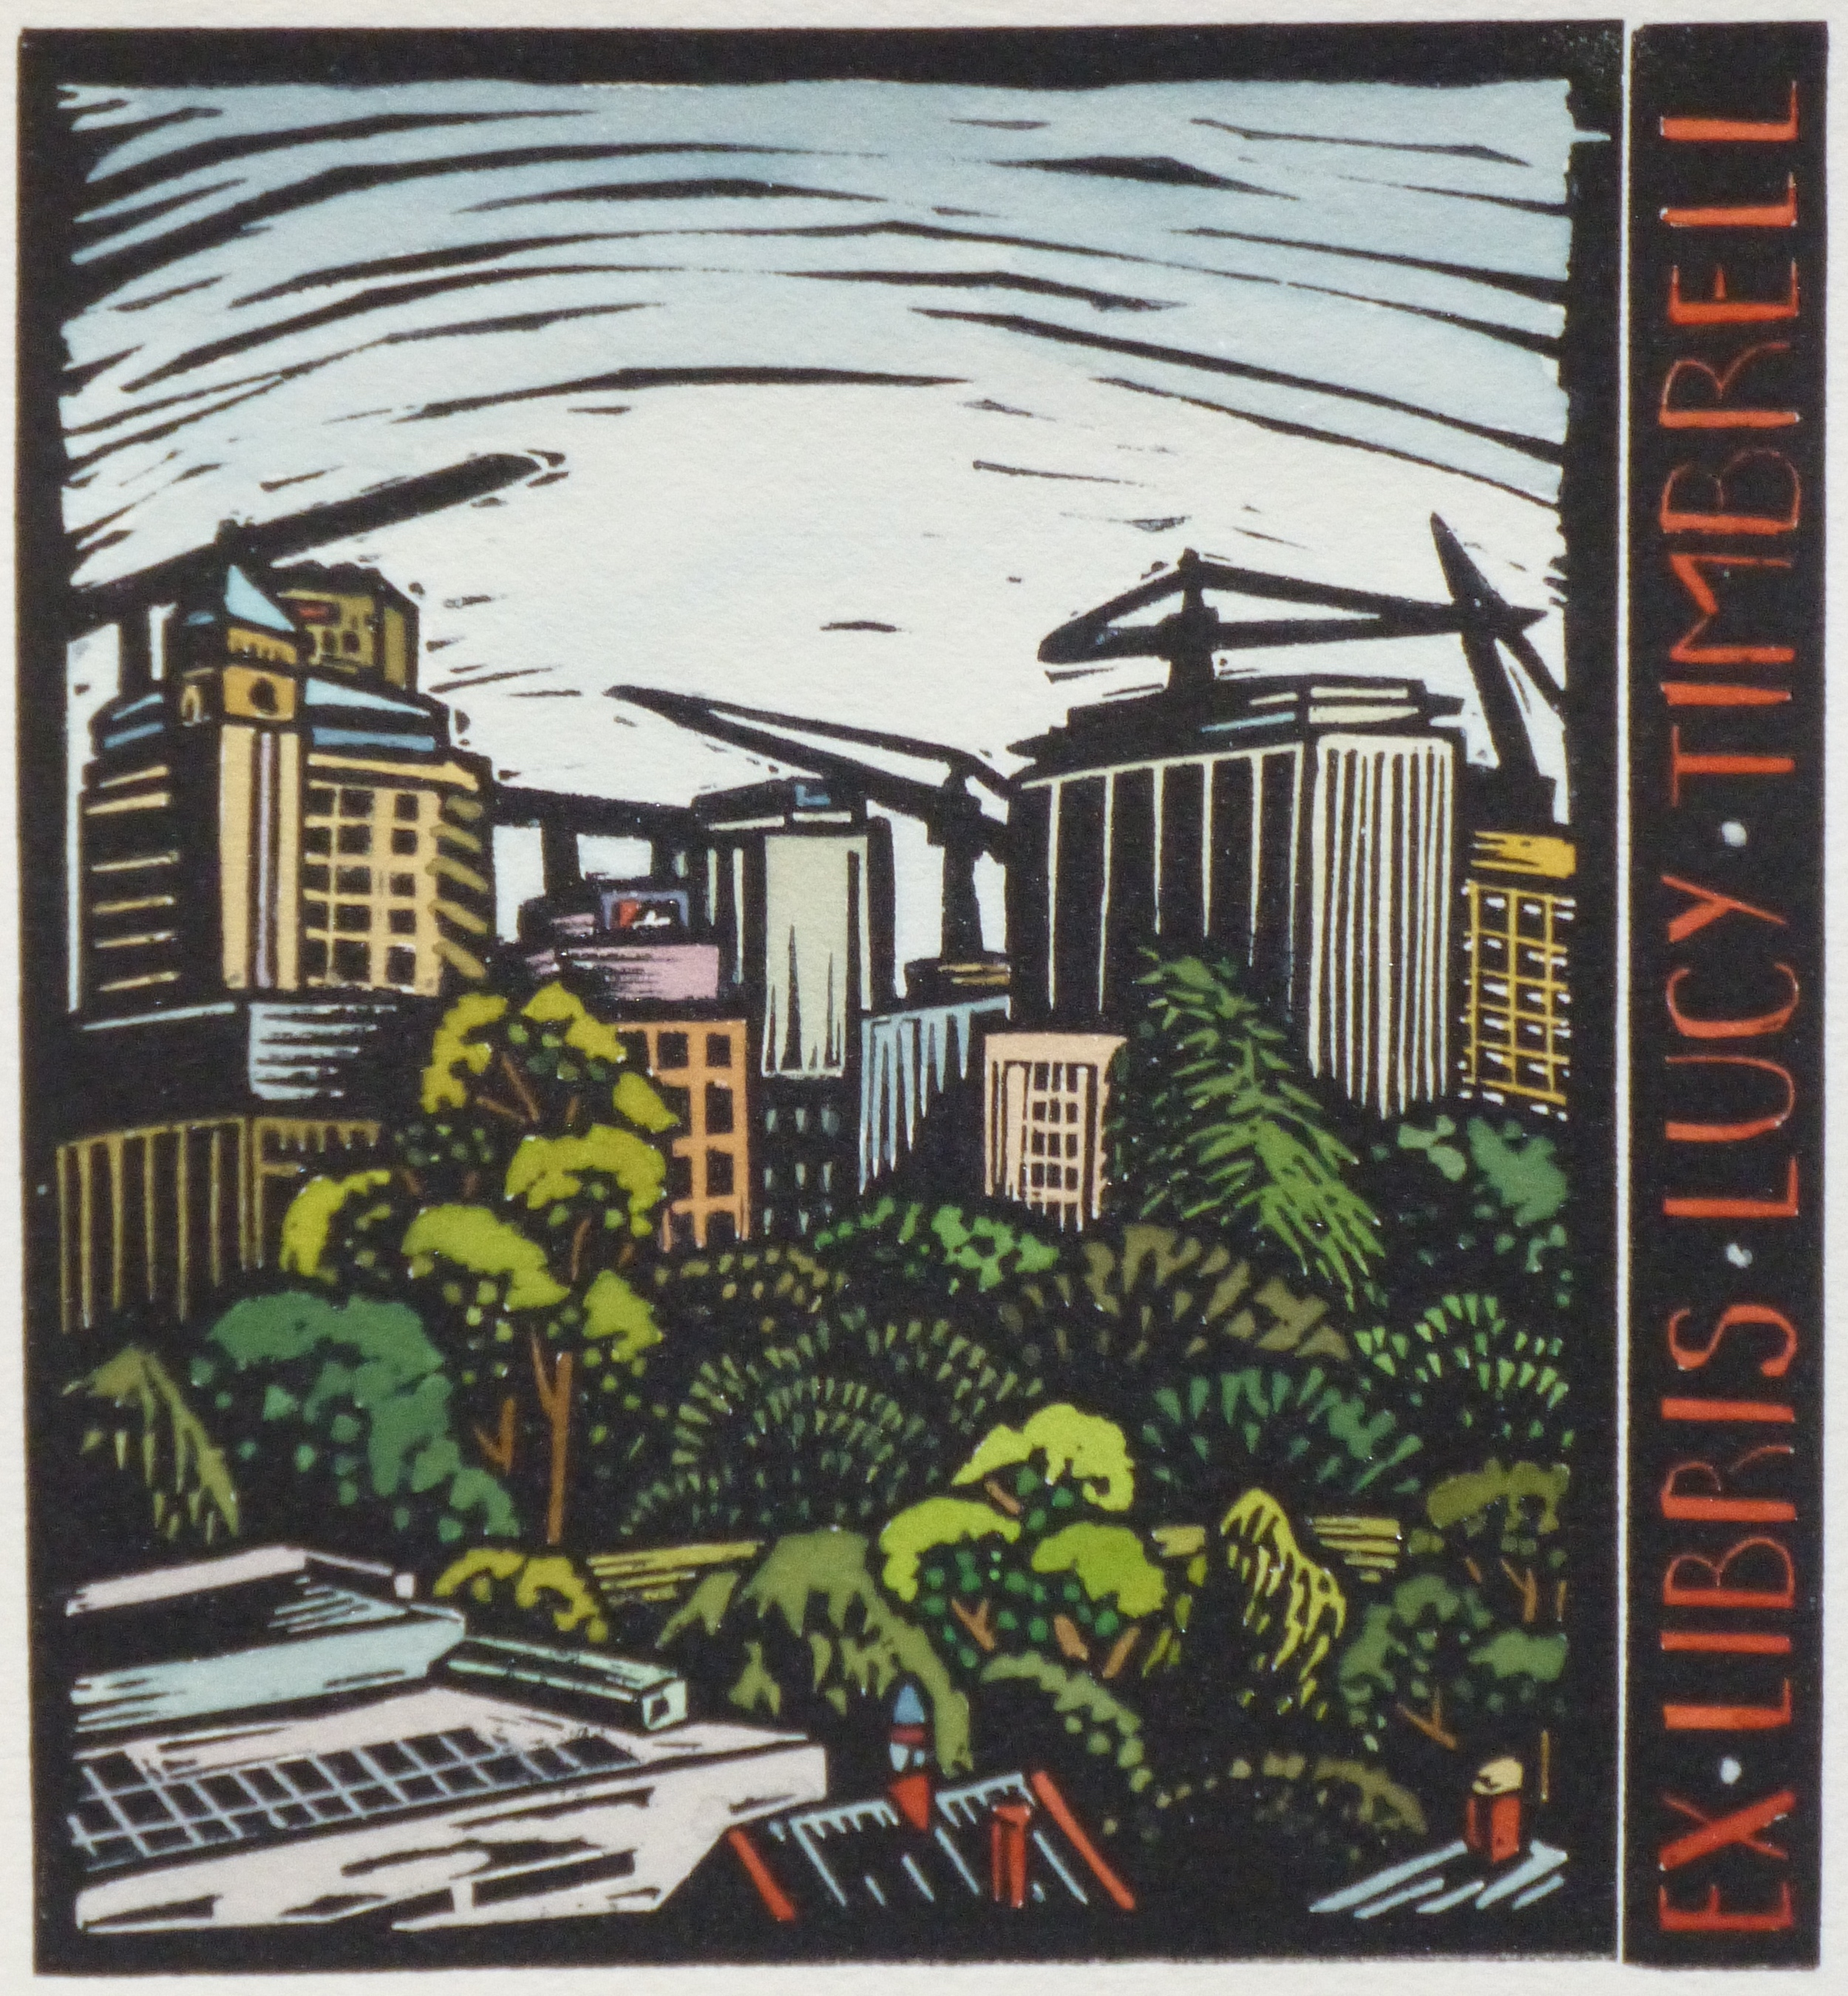 Ex Libris Lucy Timbrell   Hand coloured bookplate, 2013  Edition of 3  Image size: 15 cm x 14 cm  Paper size: 28.5 cm x 20 cm  Not for sale   Judged the Best Australian Relief Bookplate in the  Australian Bookplate Design Award,  2013